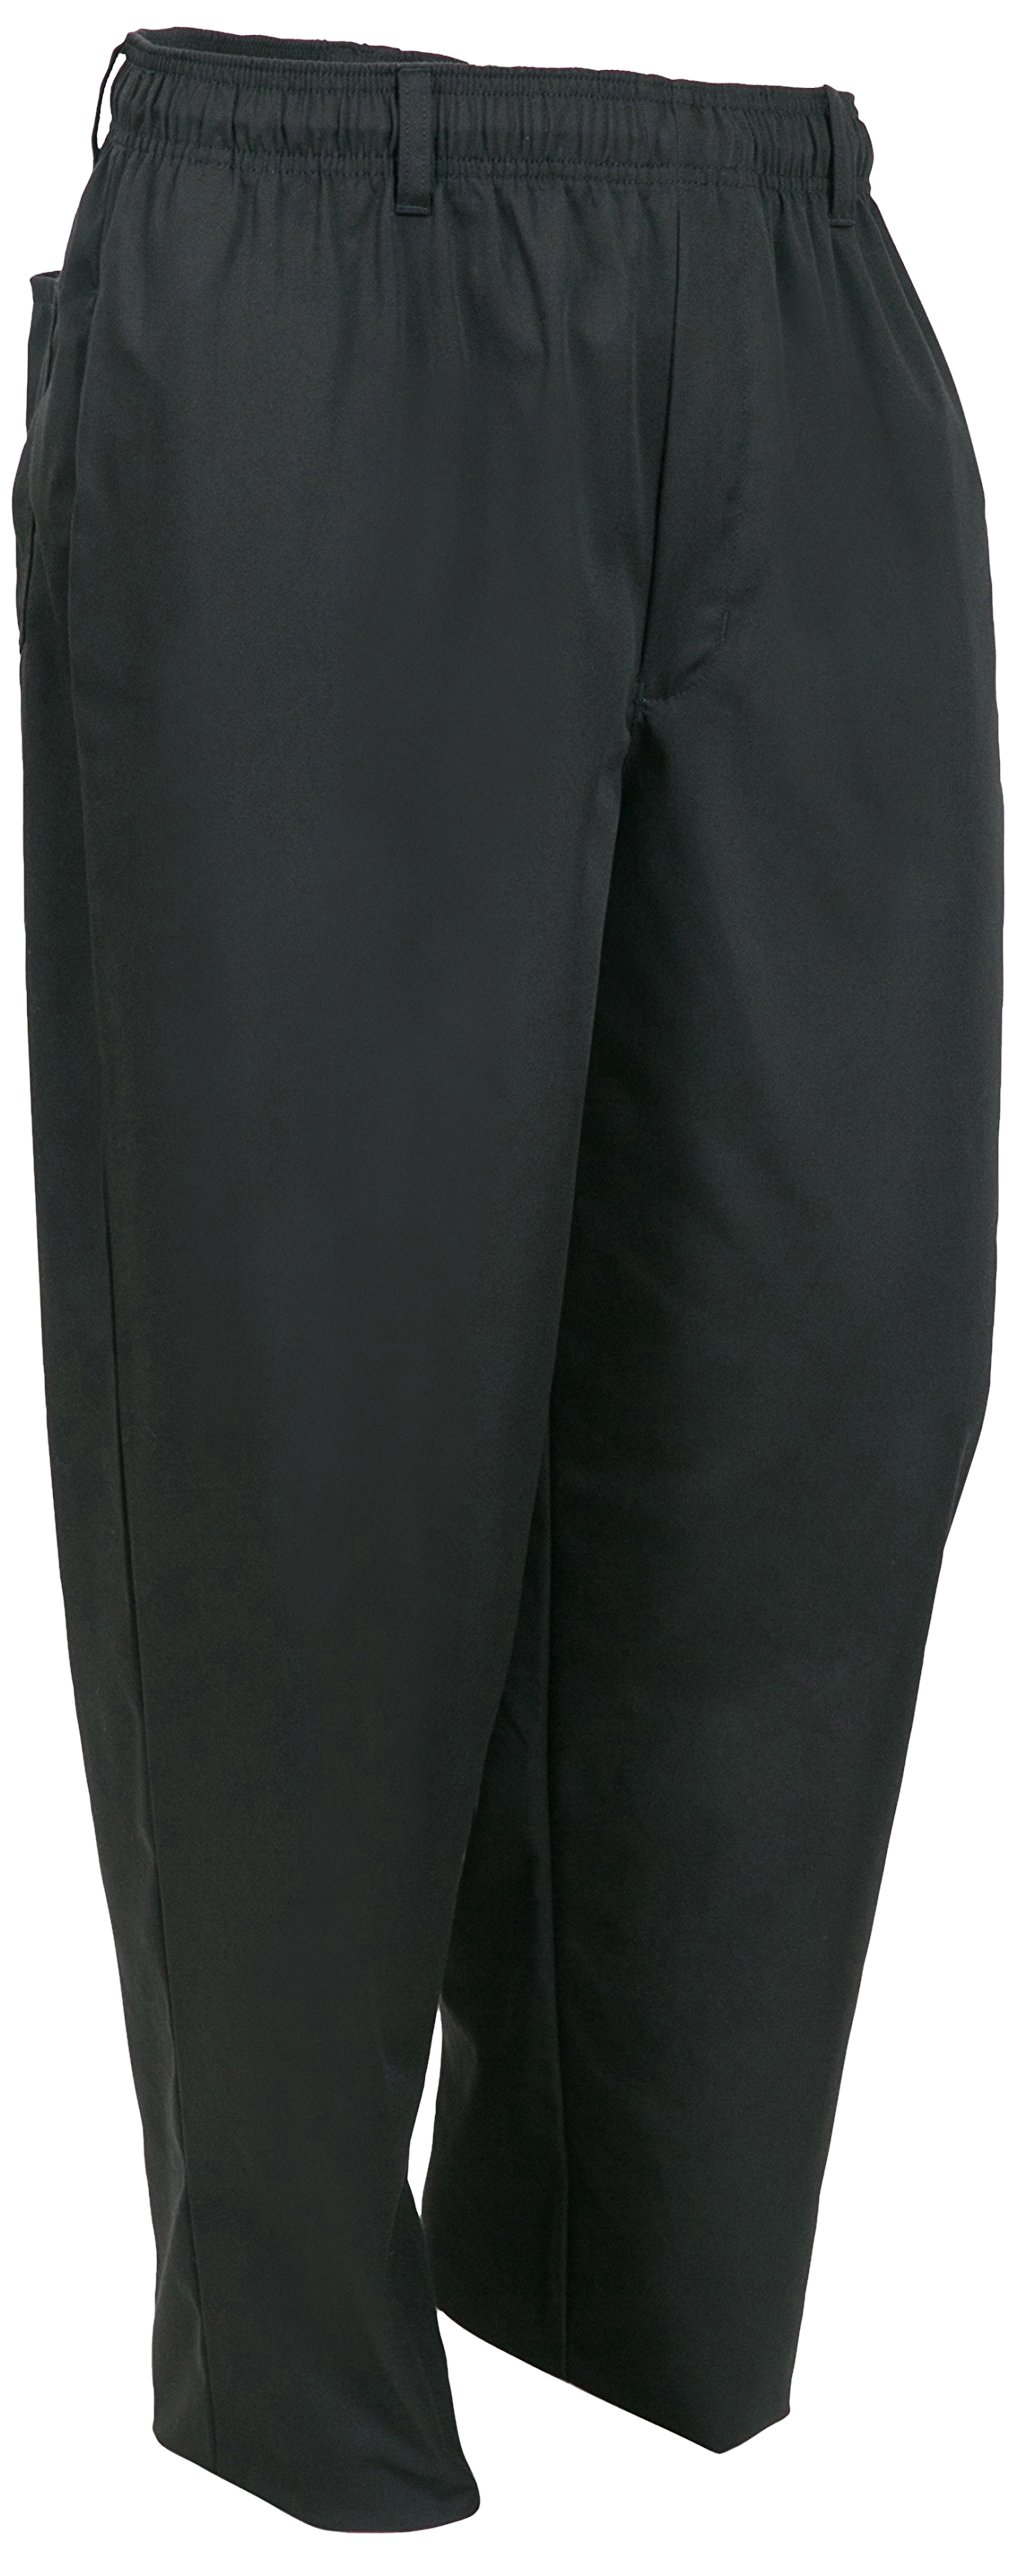 Mercer Culinary M60050BK6X Millennia Men's Cook's Pants, 6X-Large, Black by Mercer Culinary